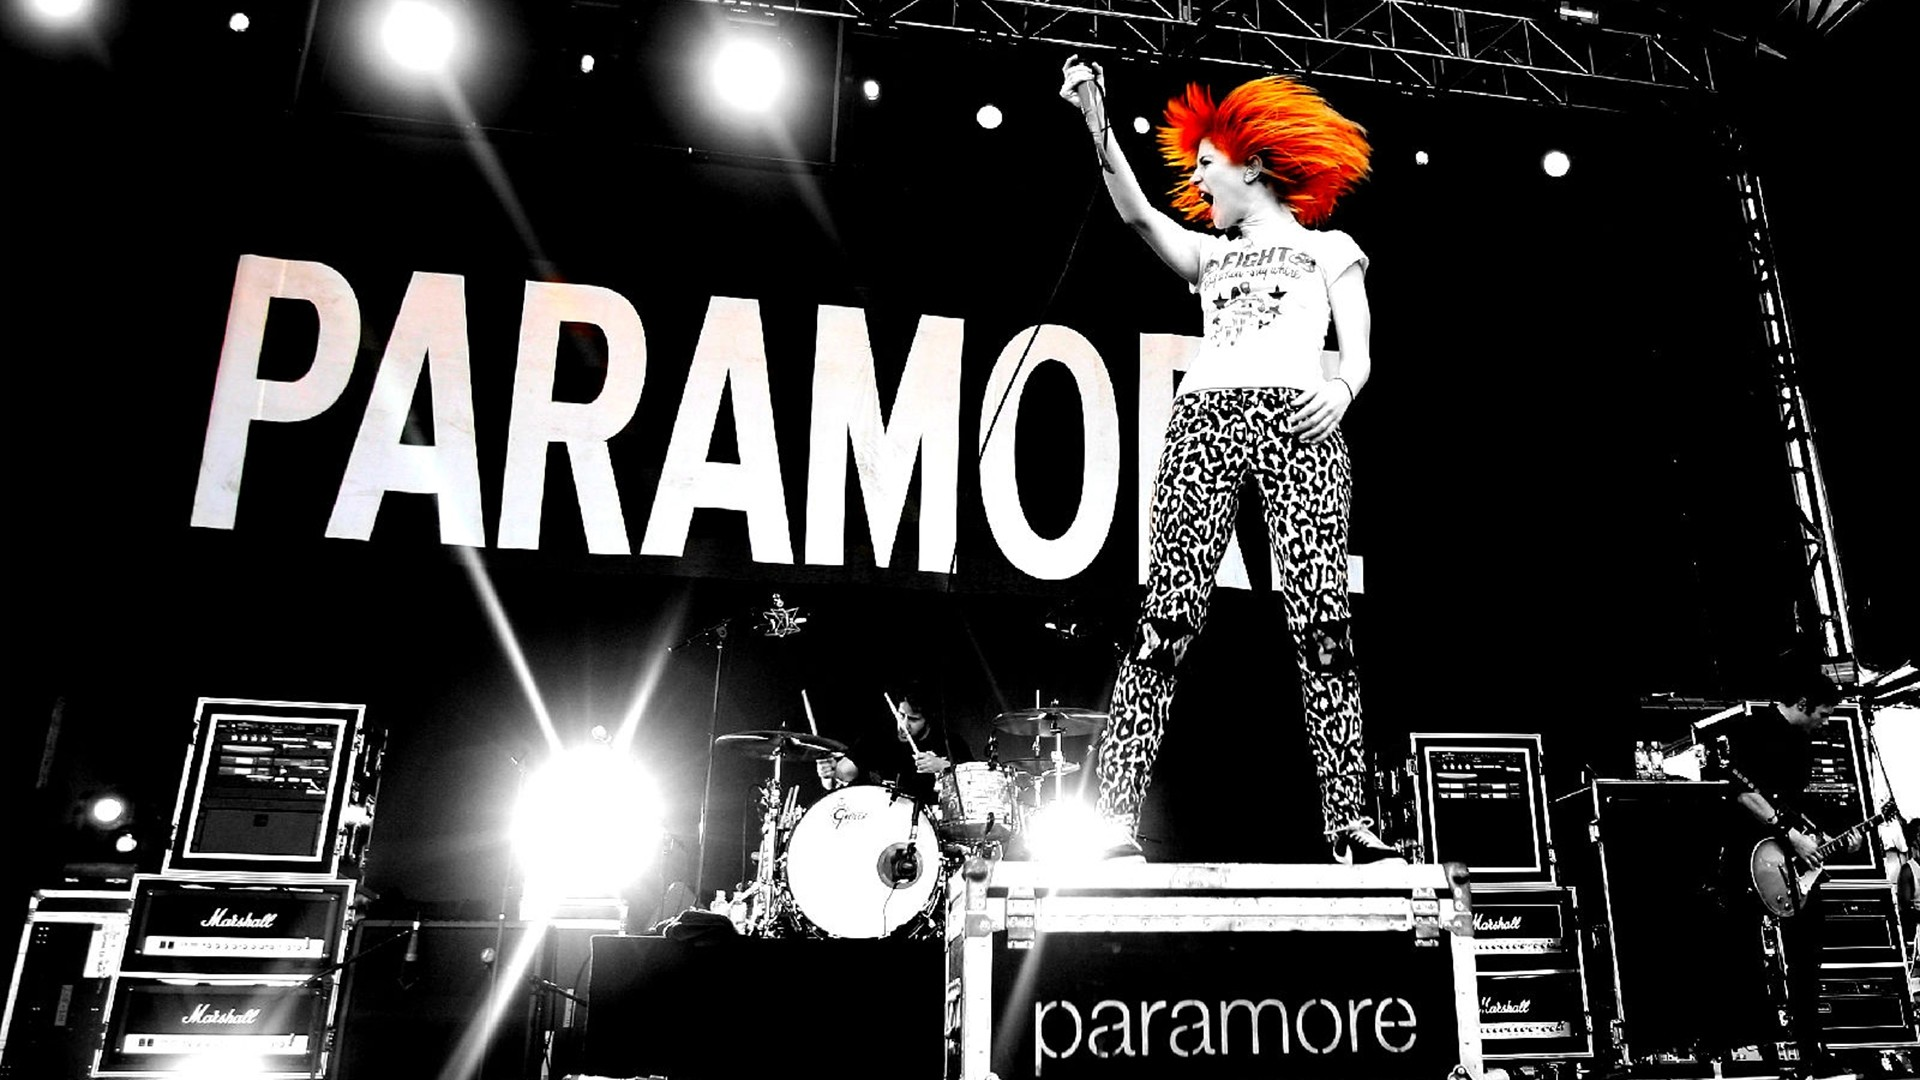 1920x1080 View all Paramore Wallpapers. Report this Image? favorite enlarge^   ...